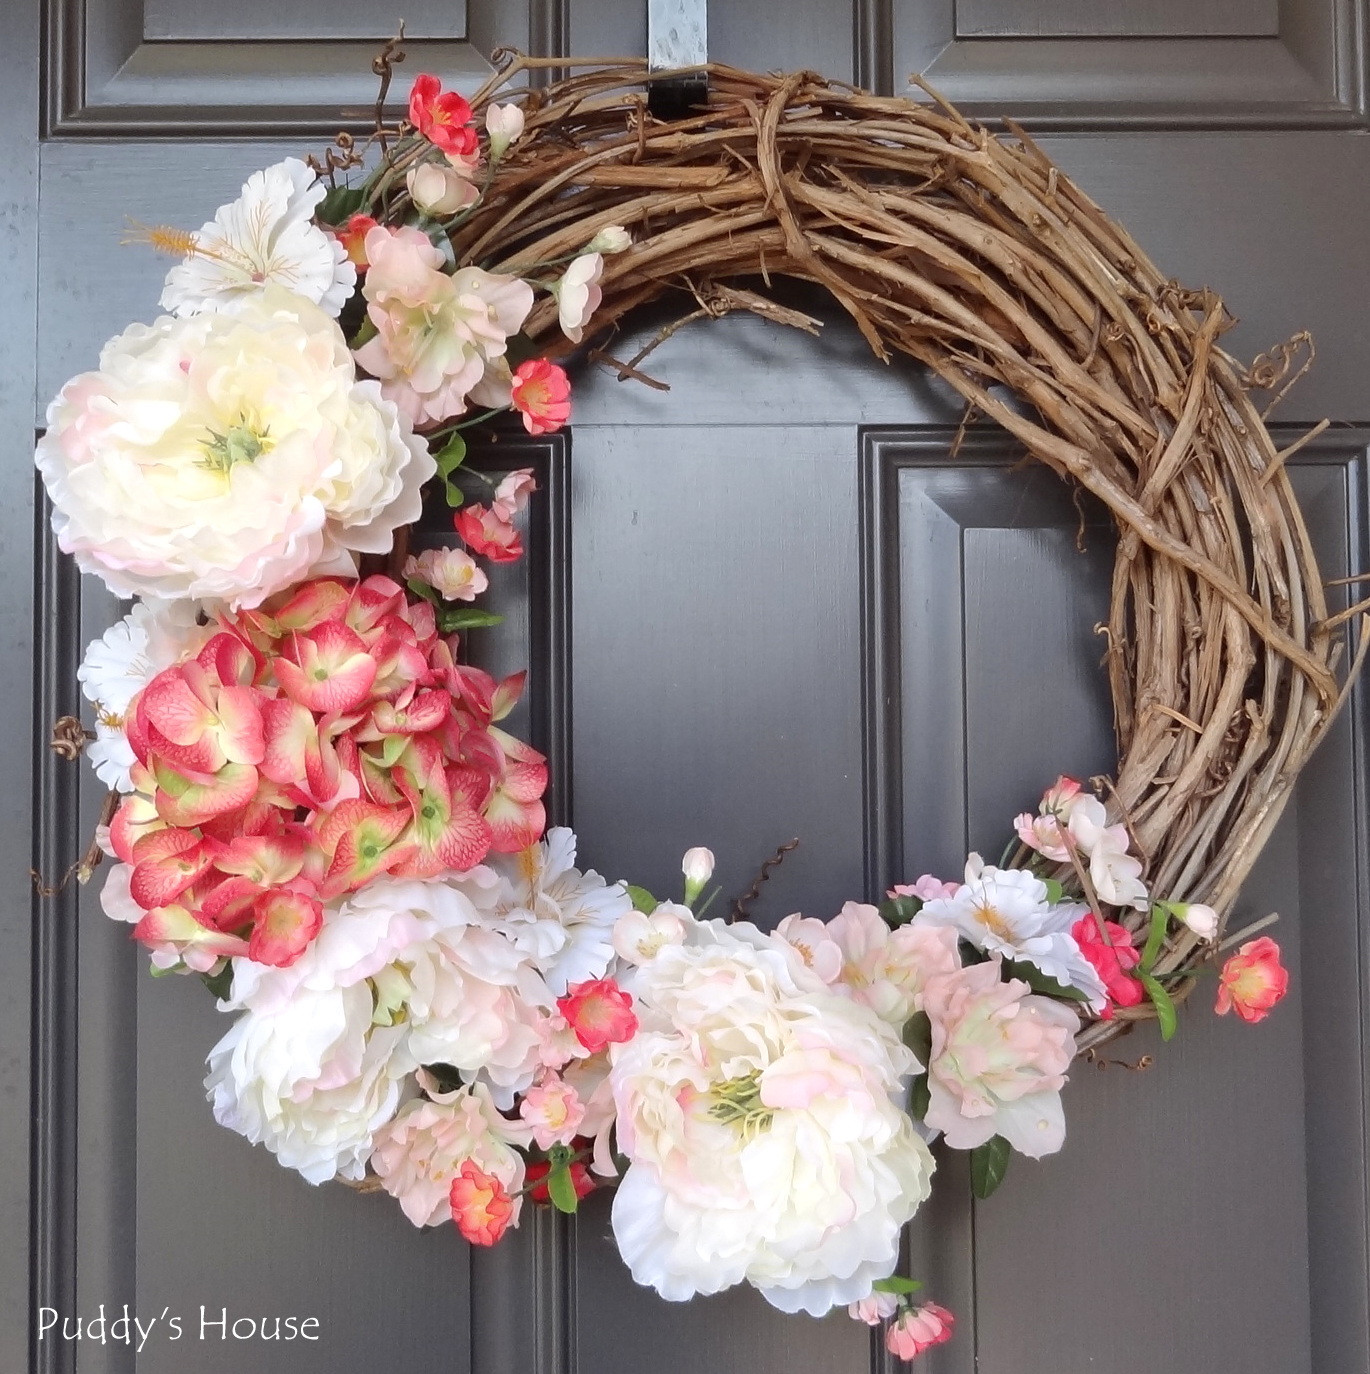 Best ideas about DIY Spring Wreath . Save or Pin 2014 DIY Spring Wreath – Puddy s House Now.